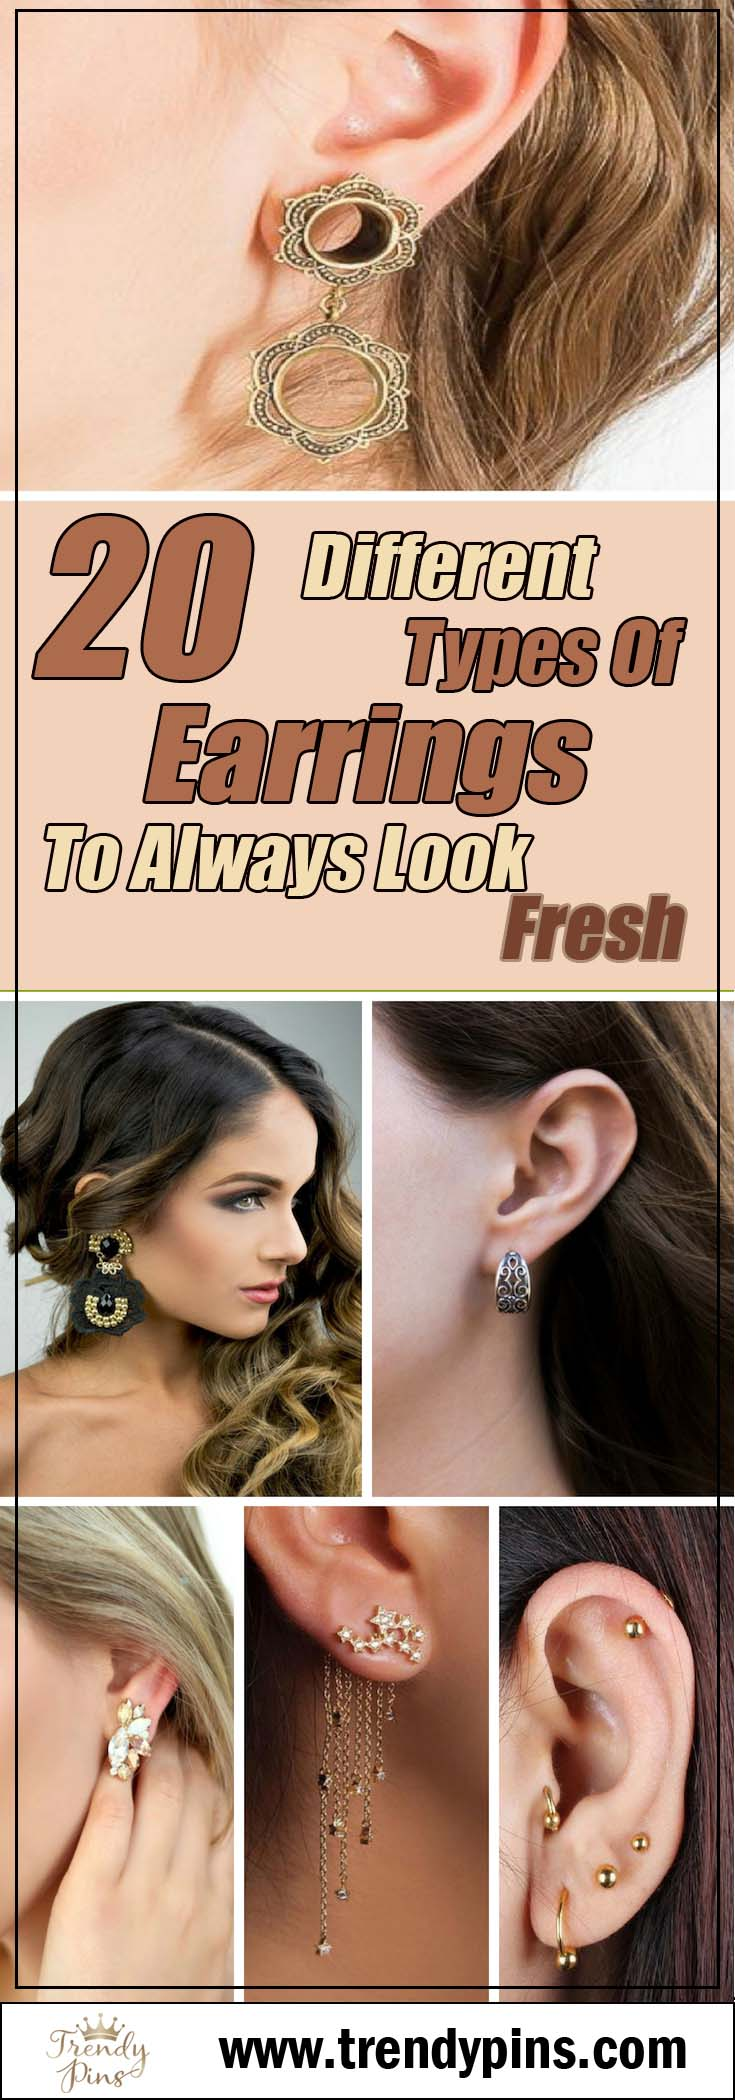 20 different types of earrings to always kook fresh #accessories #jewelry #earrings #fashion #trendypins